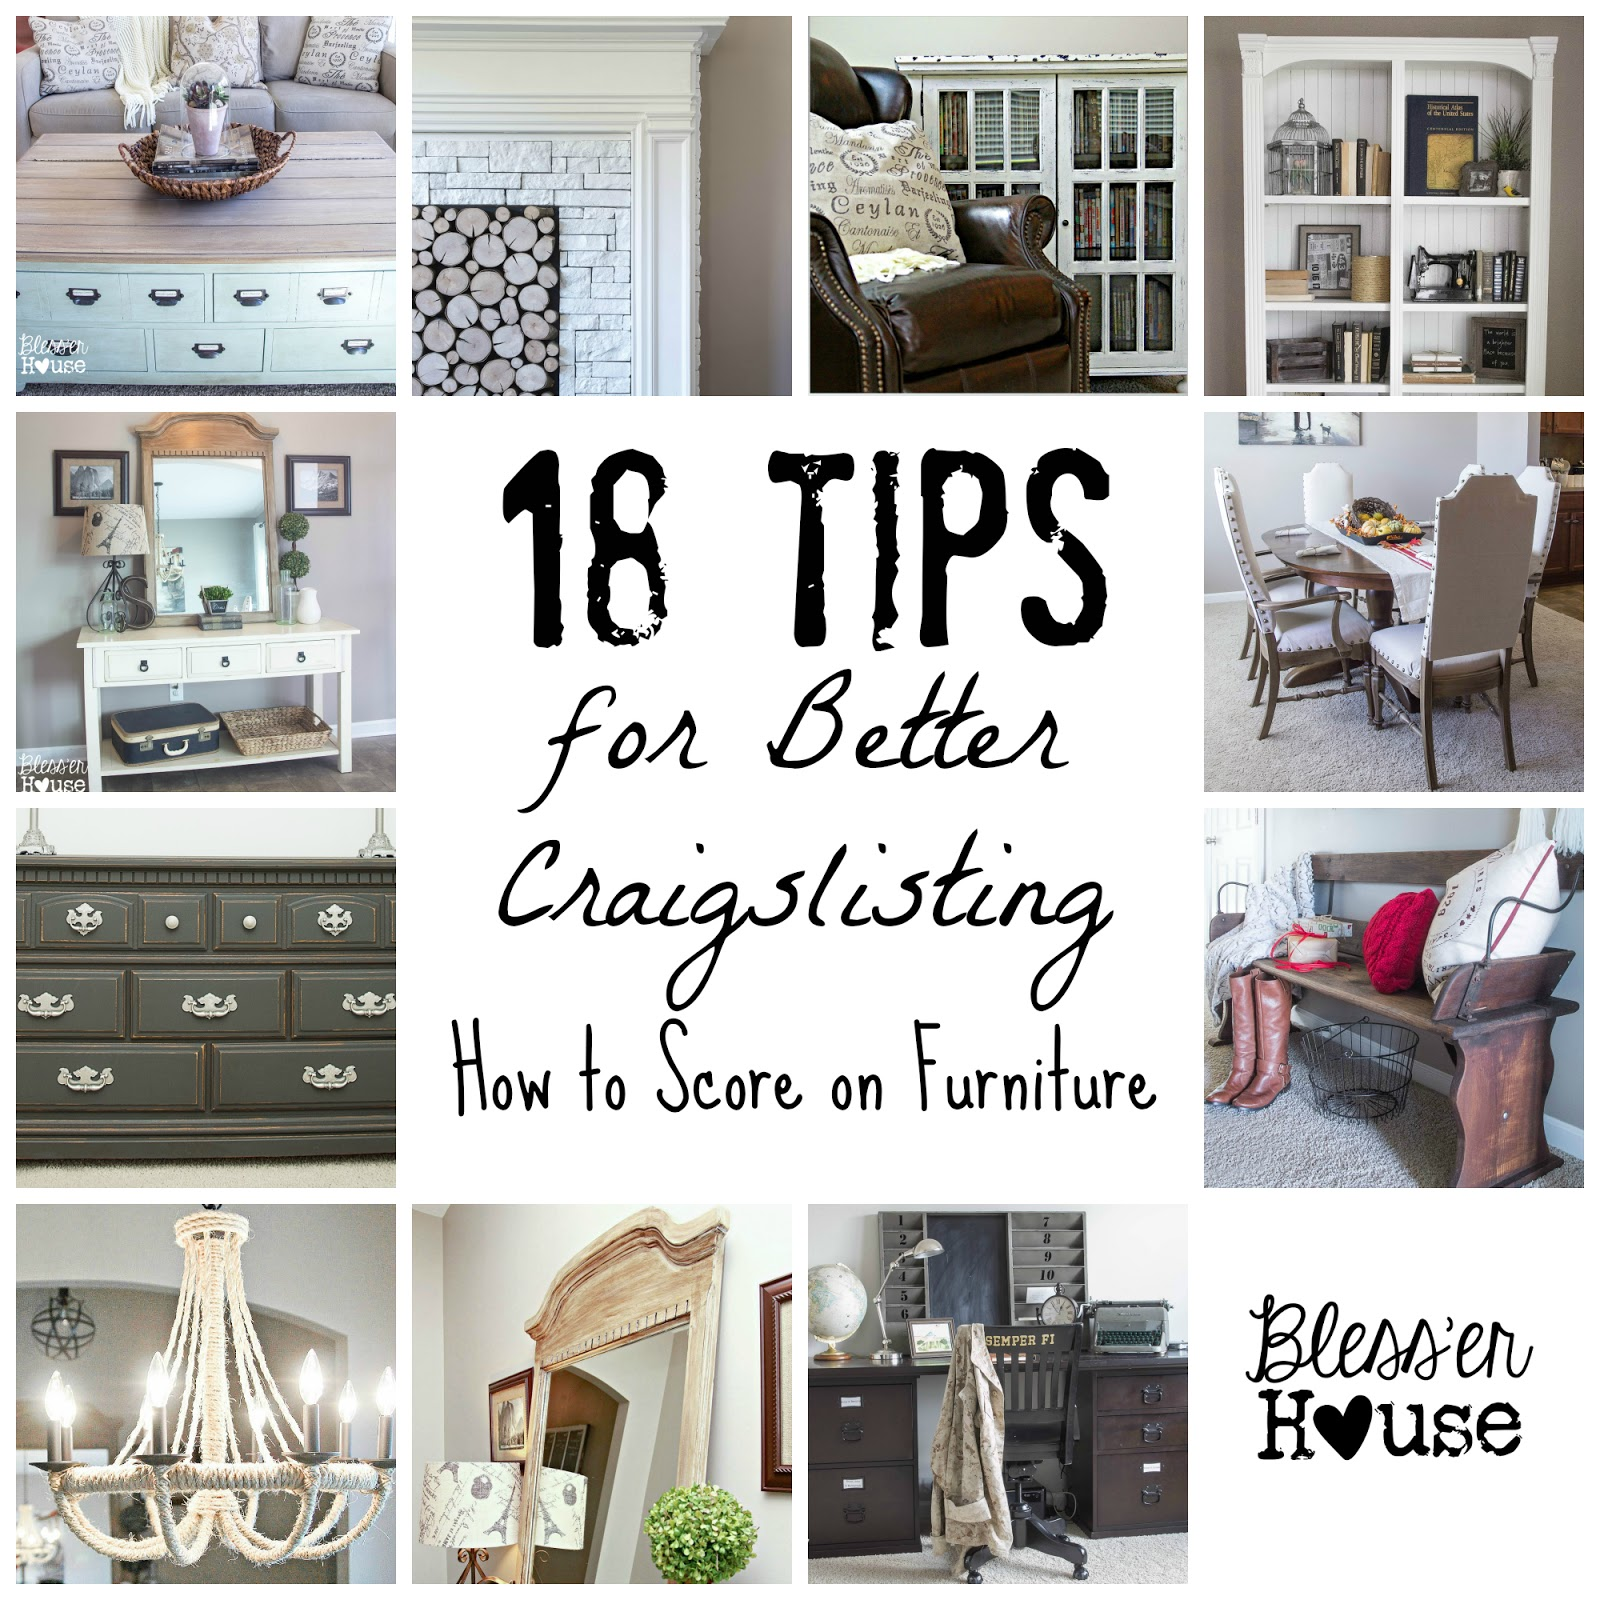 Bless'er House | 18 Tips for Better Craigslisting: How to Score on Furniture